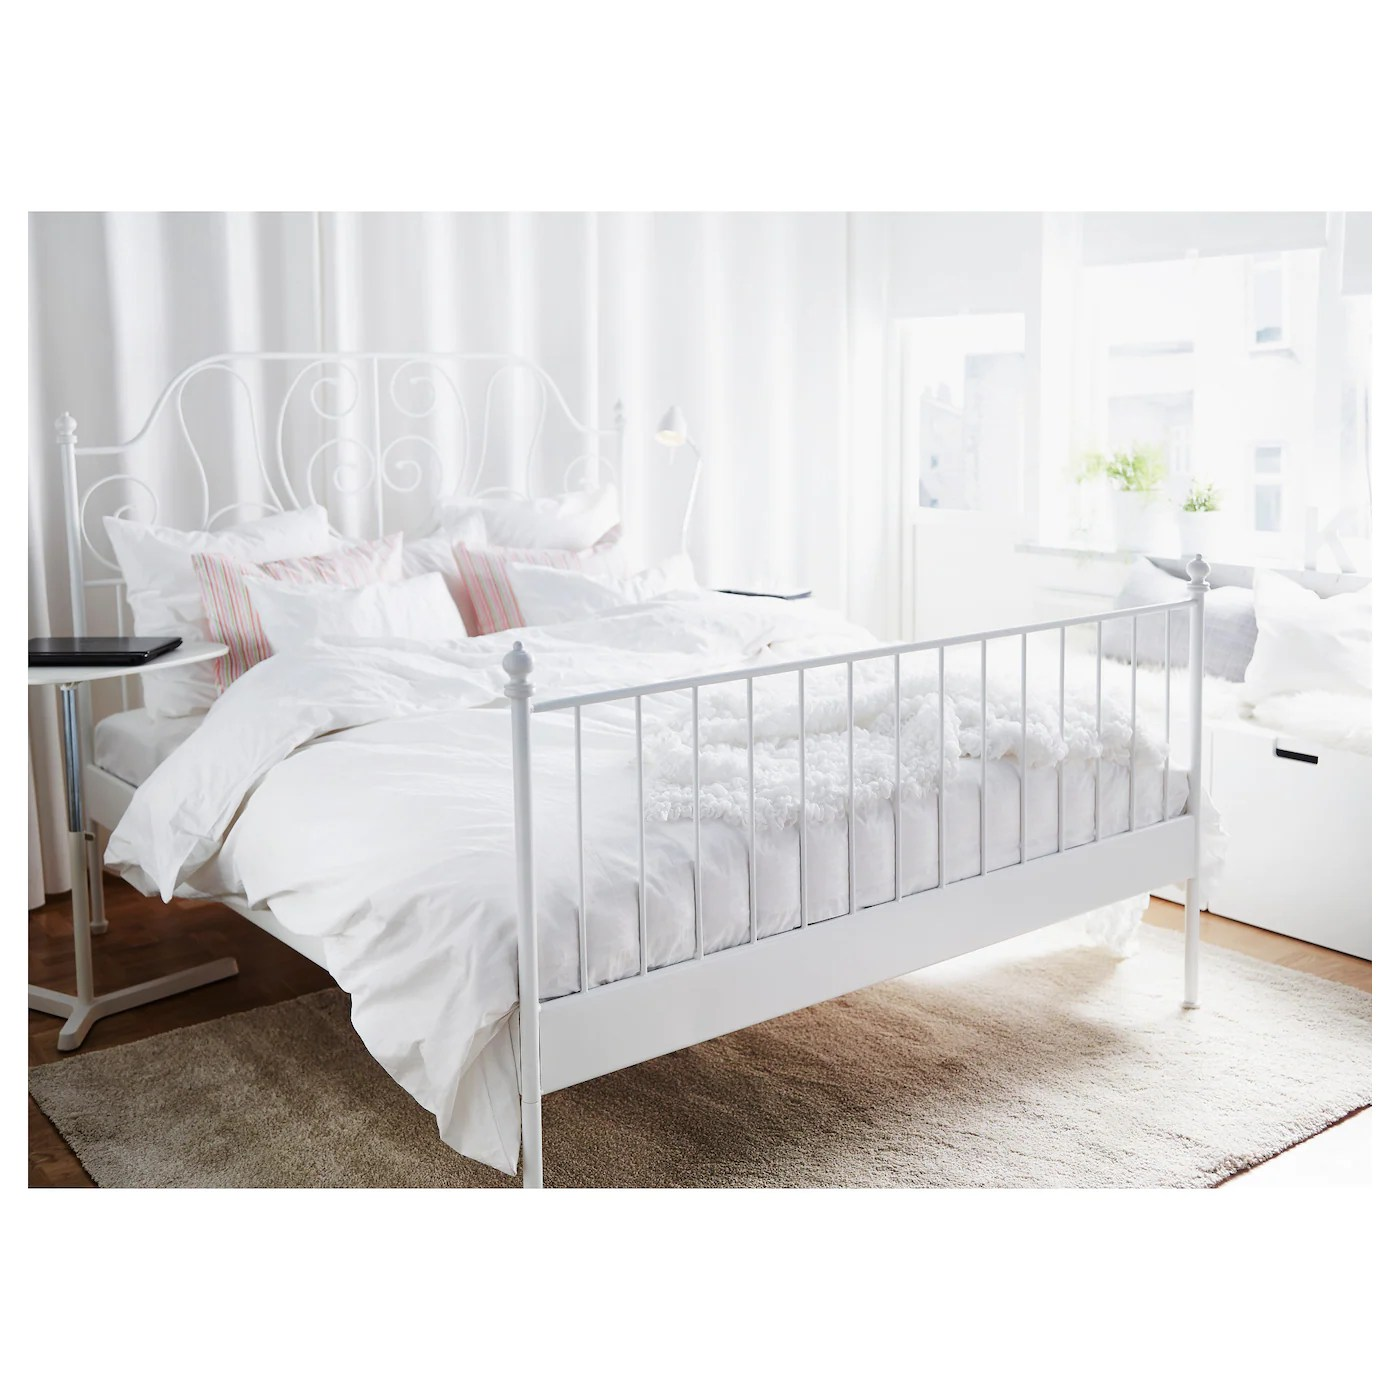 White Double Bed With Mattress Leirvik Bed Frame White Leirsund 140x200 Cm Ikea